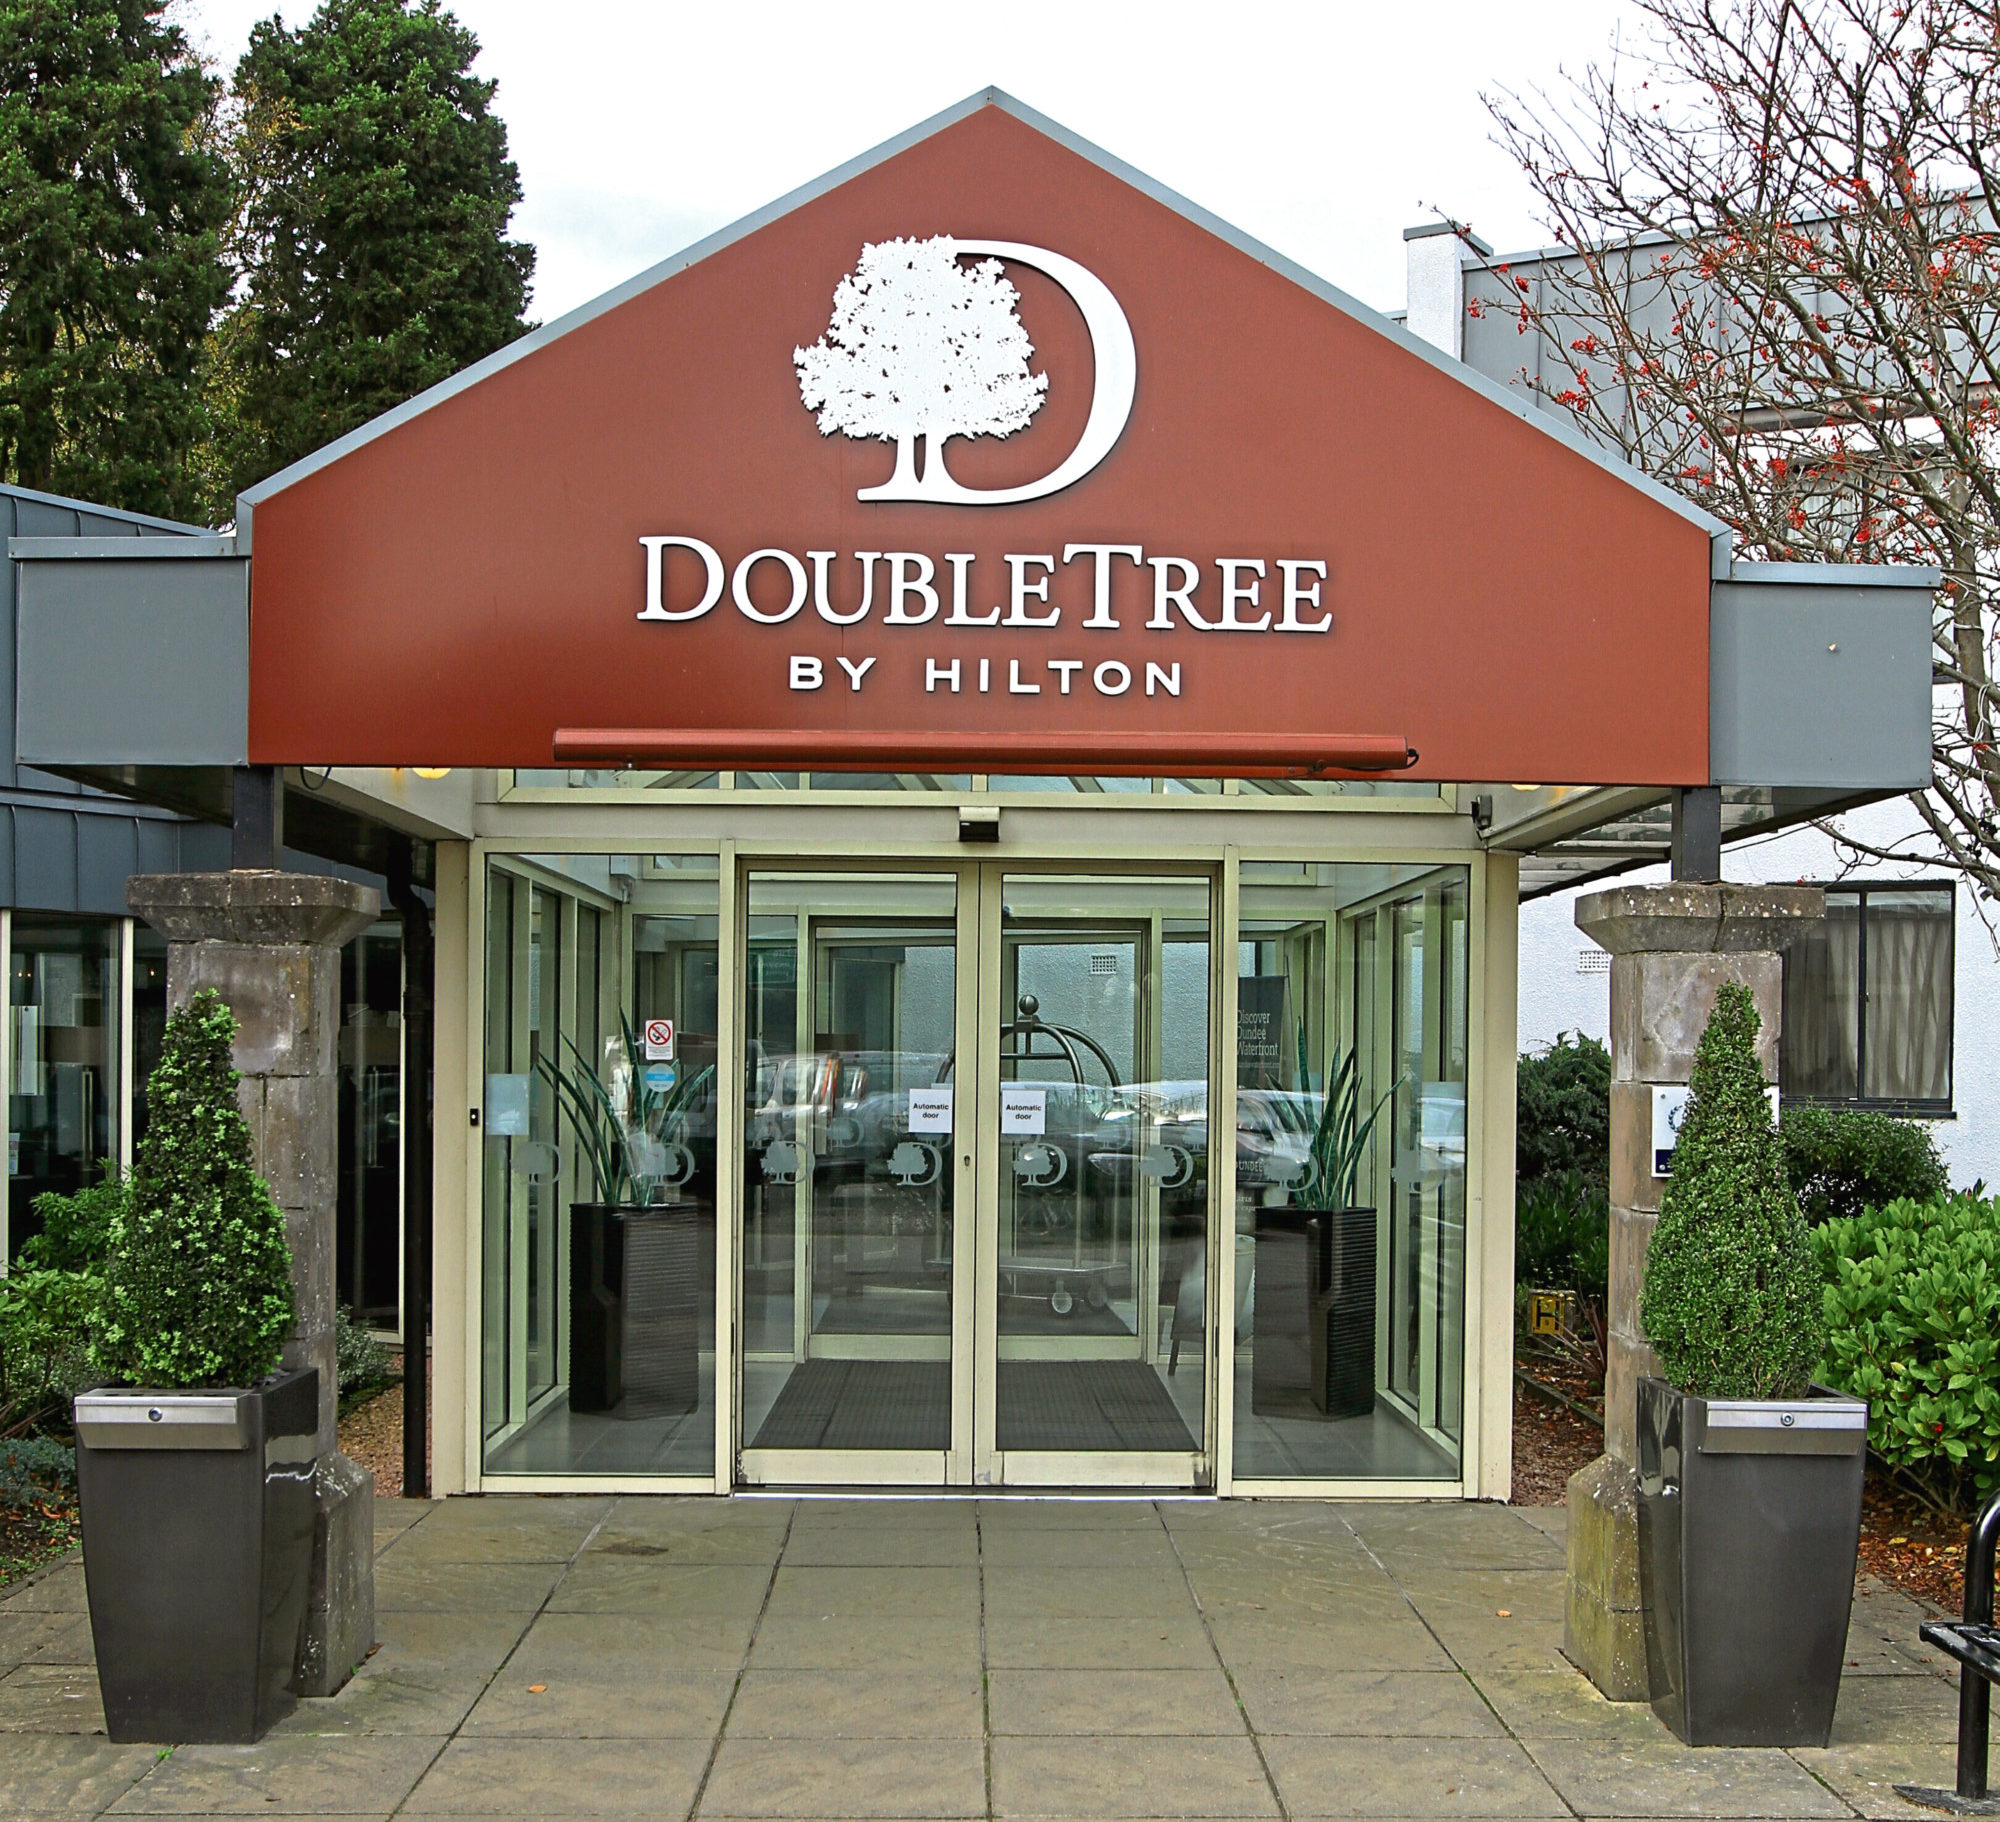 DoubleTree by Hilton on the Kingsway, Dundee, where the incident is alleged to have happened.